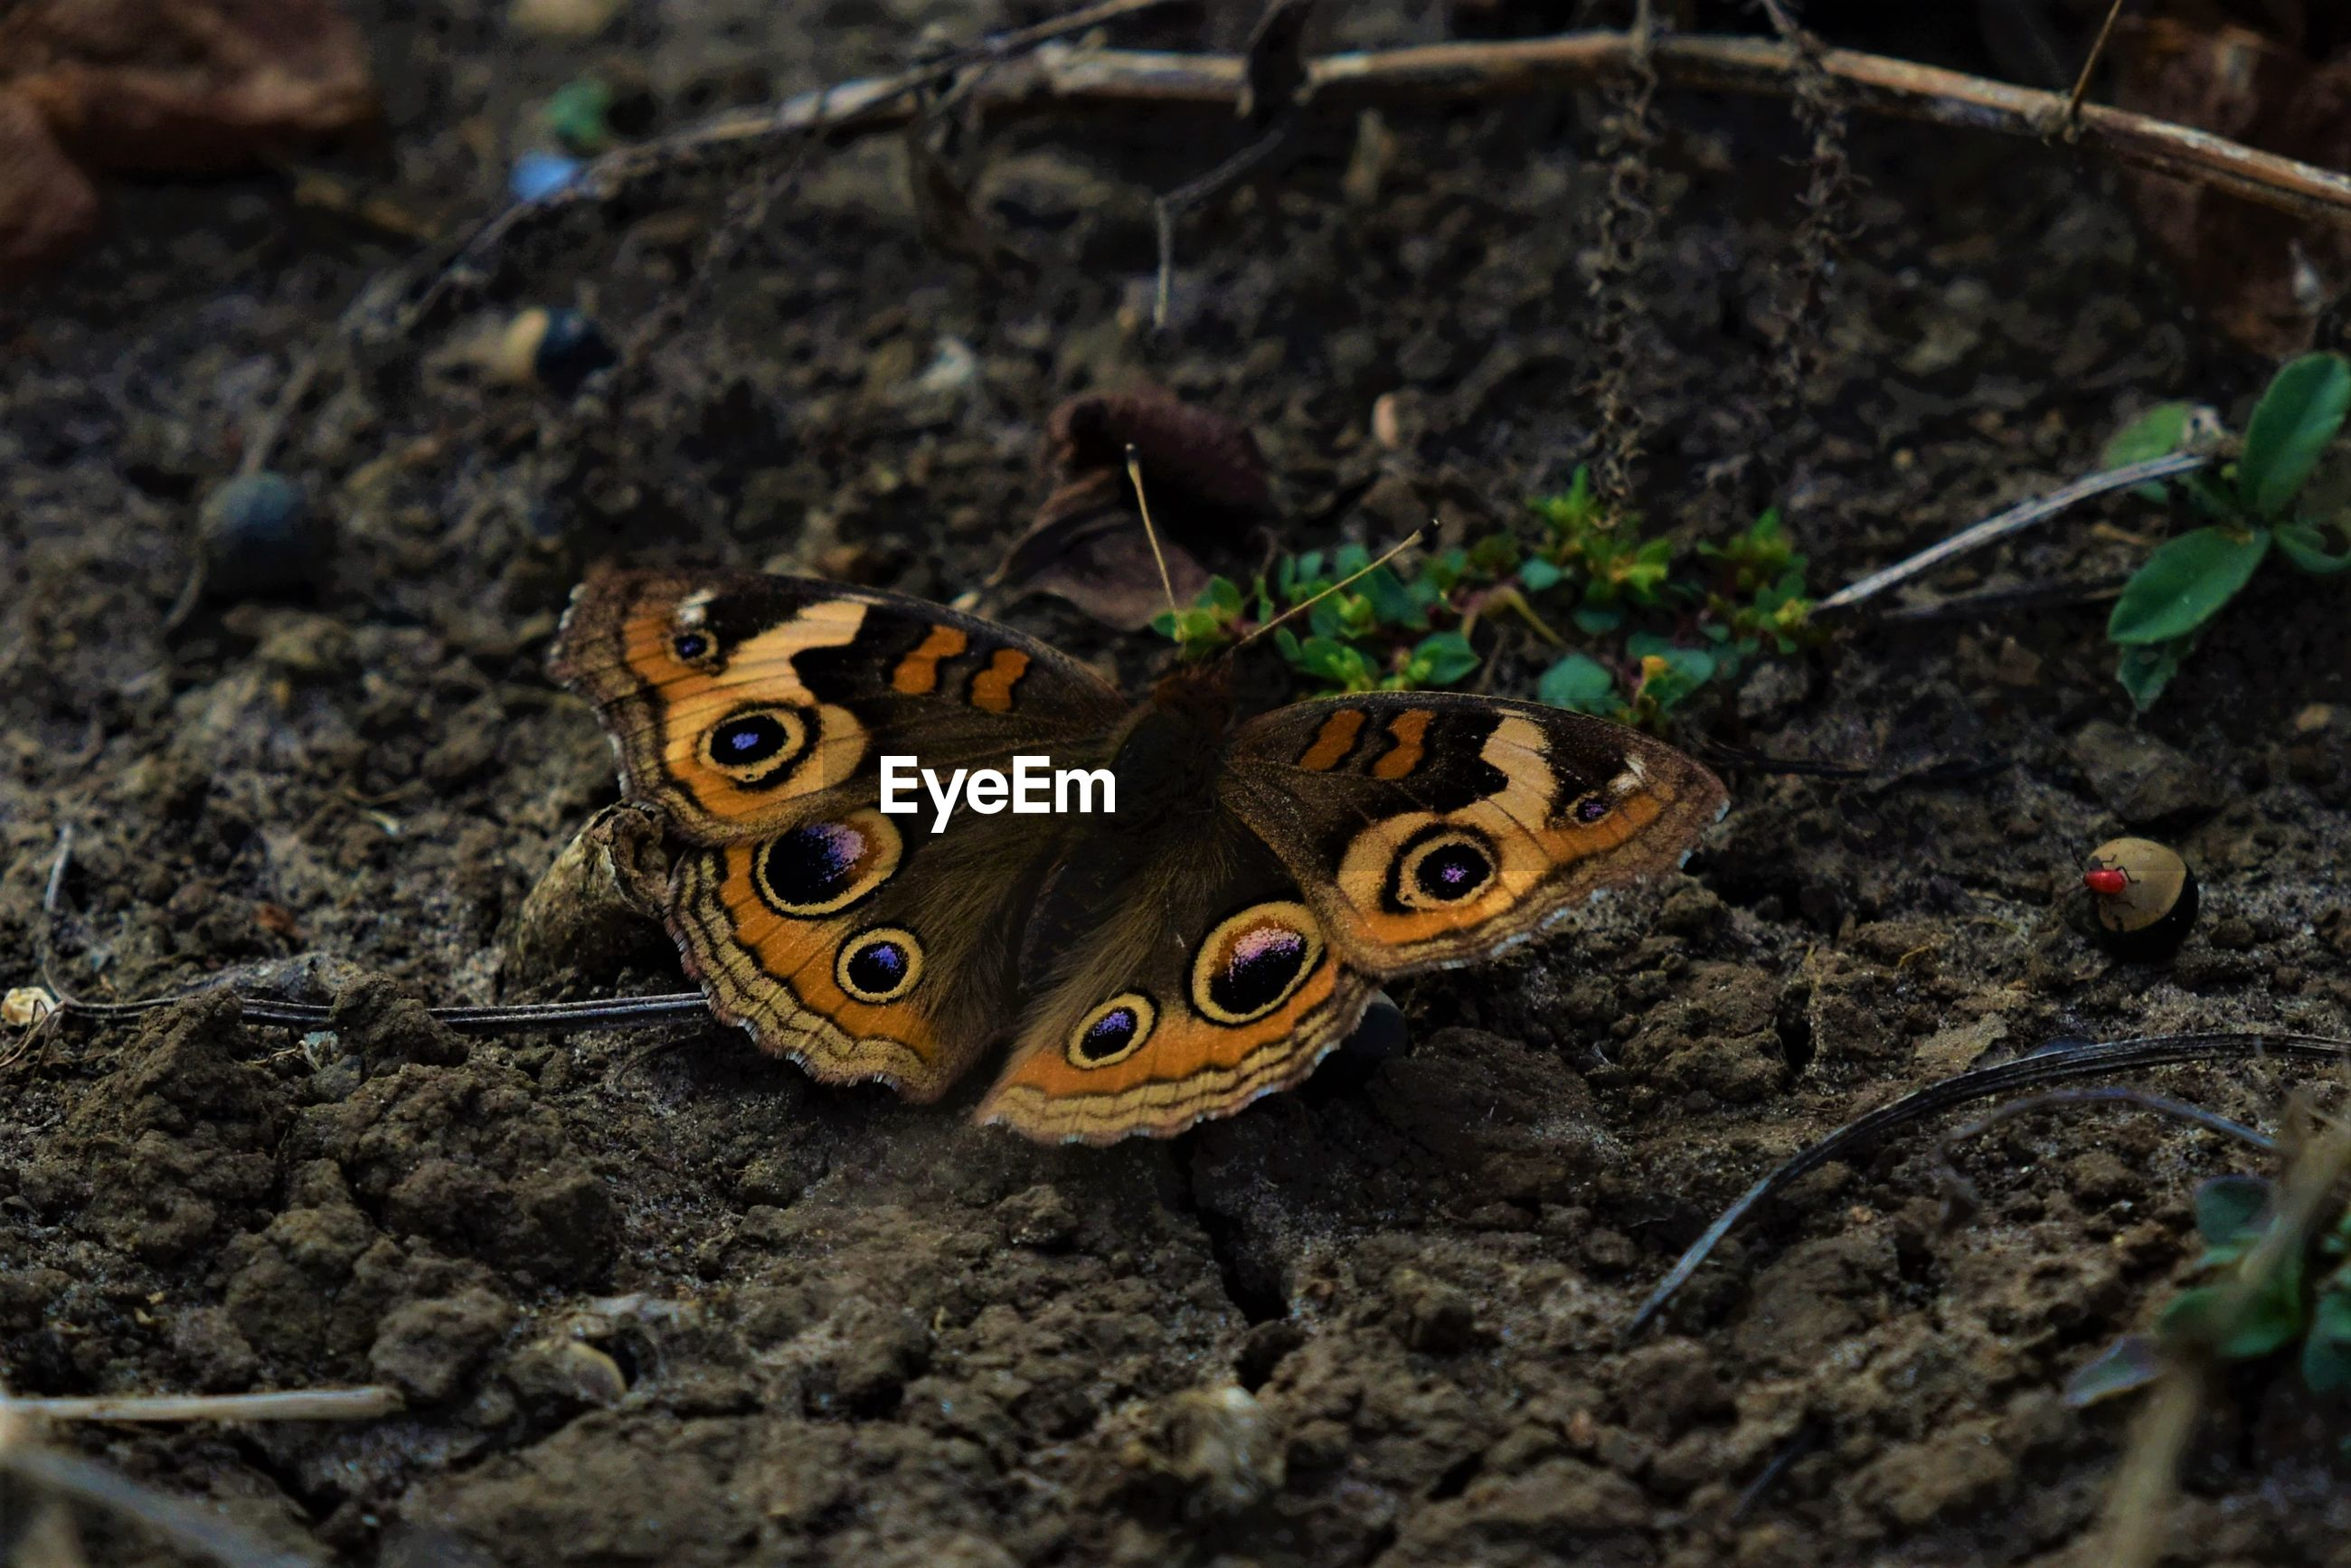 CLOSE-UP HIGH ANGLE VIEW OF BUTTERFLY ON GROUND